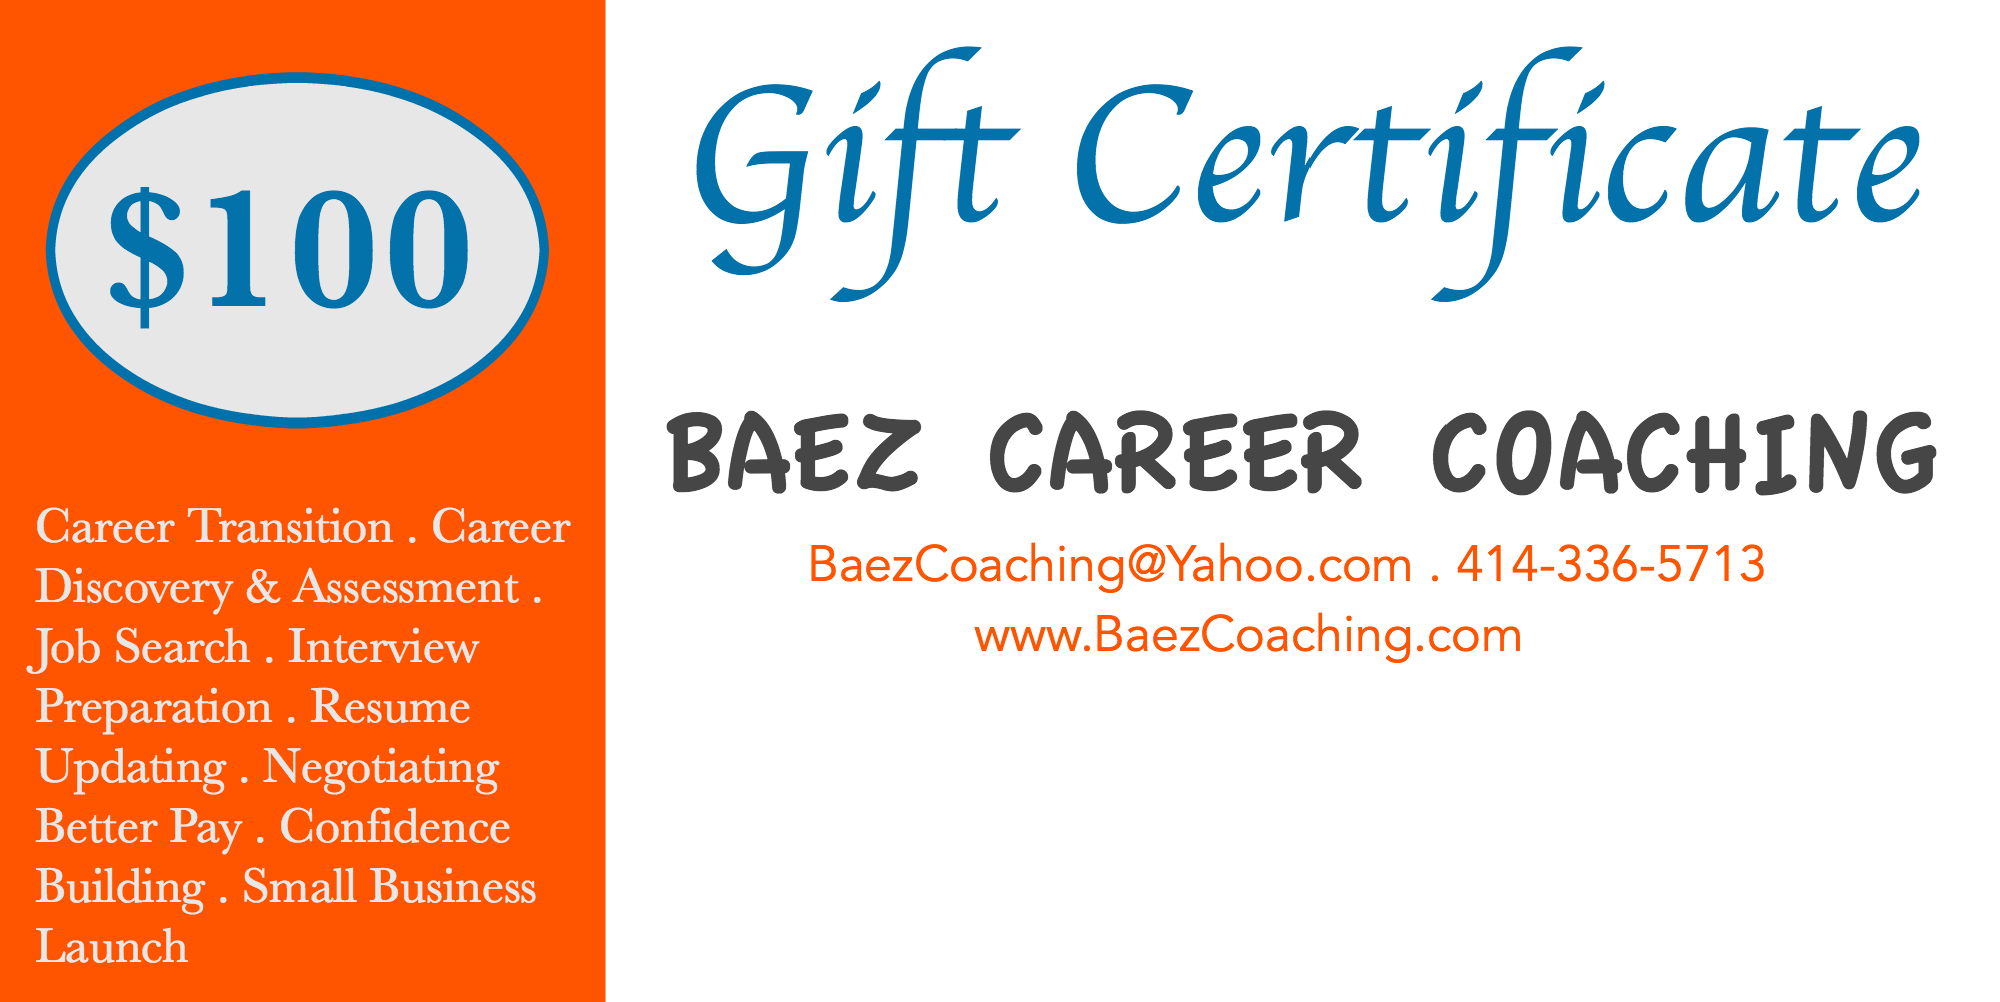 Gift Cards | Baez Coaching & Consulting